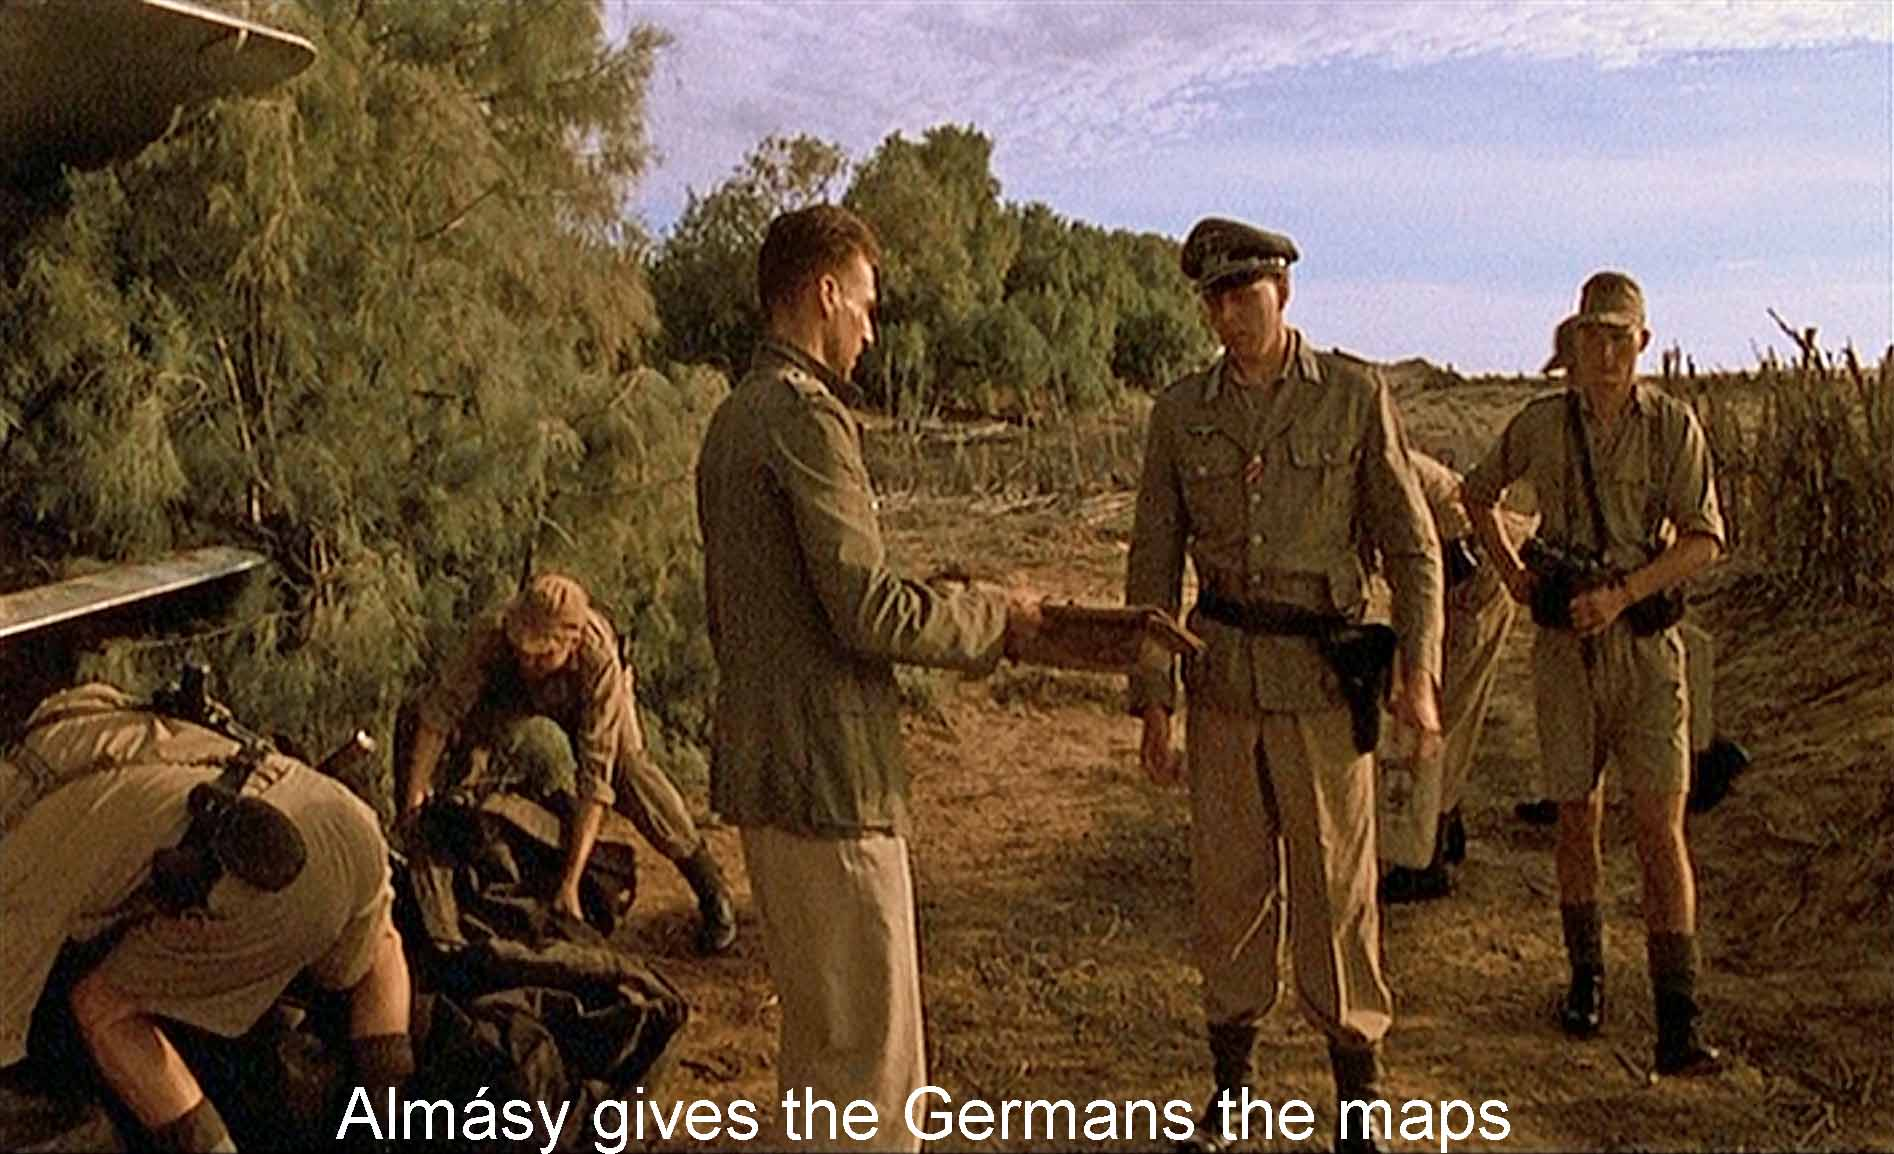 Almásy gives the Germans the maps